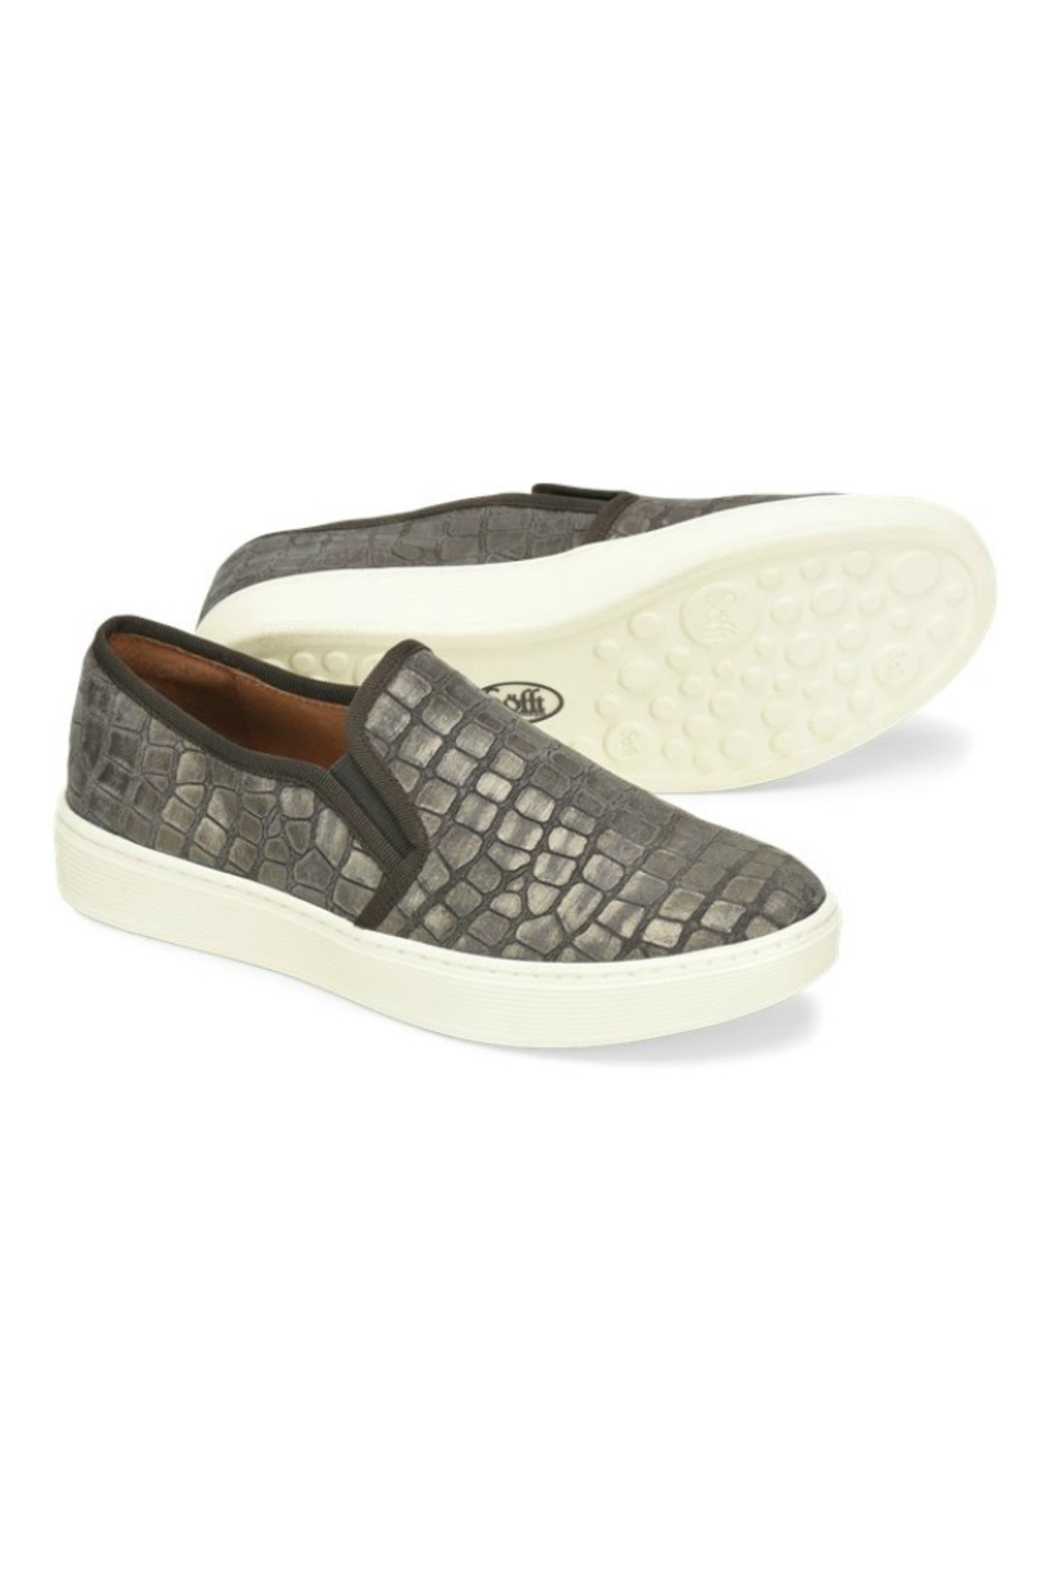 Sofft Somers Slip on in Grey Nubuck - Back Cropped Image